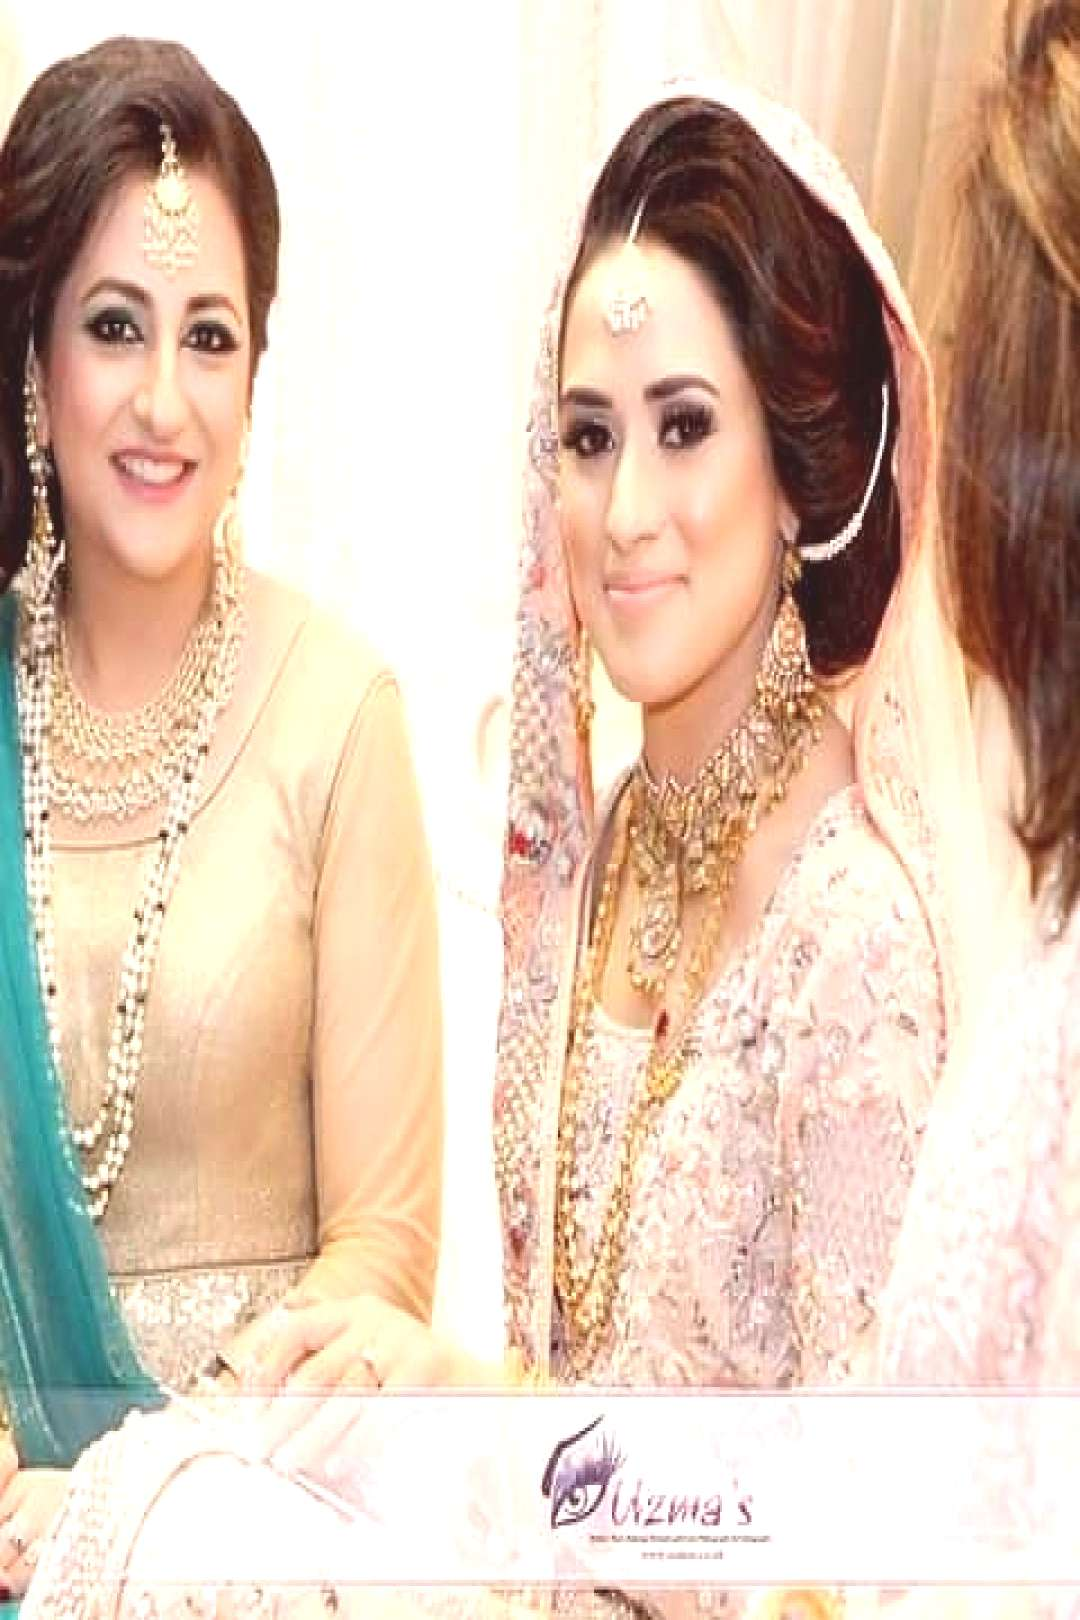 Asian wedding photography ASIAN WEDDING PHOTOGRAPHY,VIDEOGRAPHY,BRIDAL MAKEUP amp HENNA SERVICES IN A